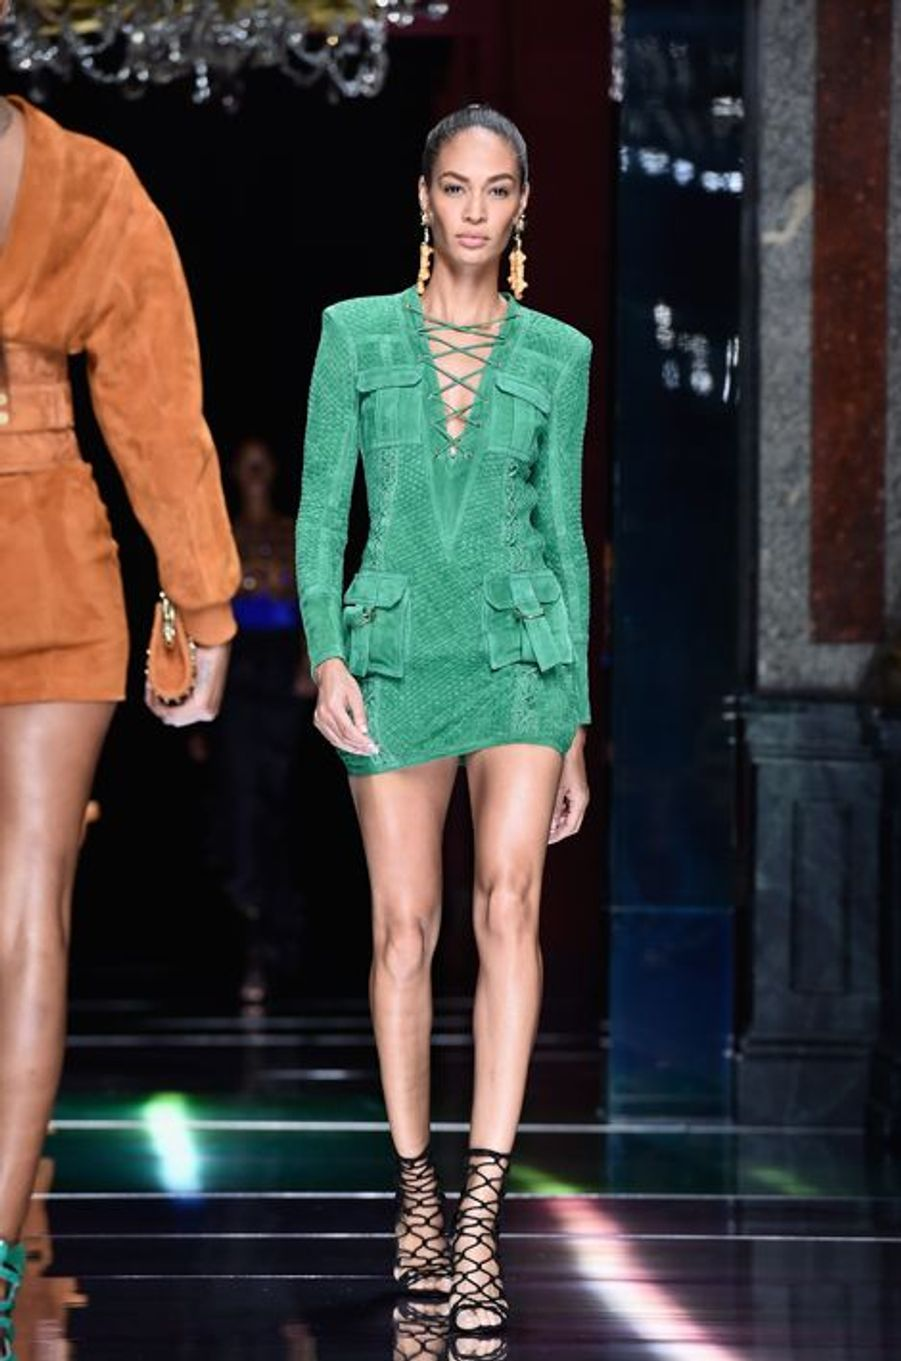 Balmain fait le plein de super models pour la Fashion week de Paris: Joan Smalls